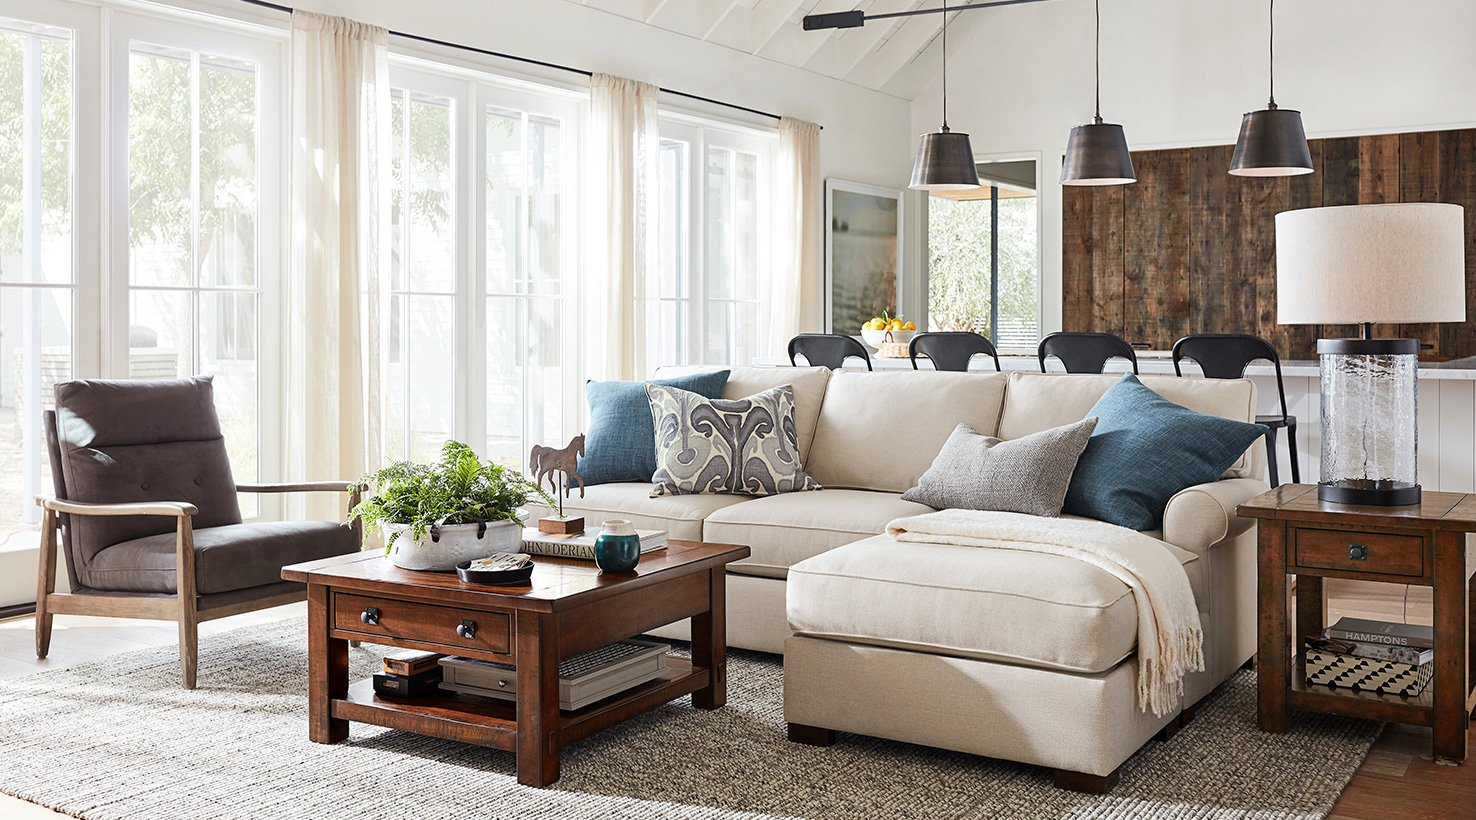 living room paint color ideas inspiration gallery on best neutral paint colors for living room sherwin williams living room id=45752